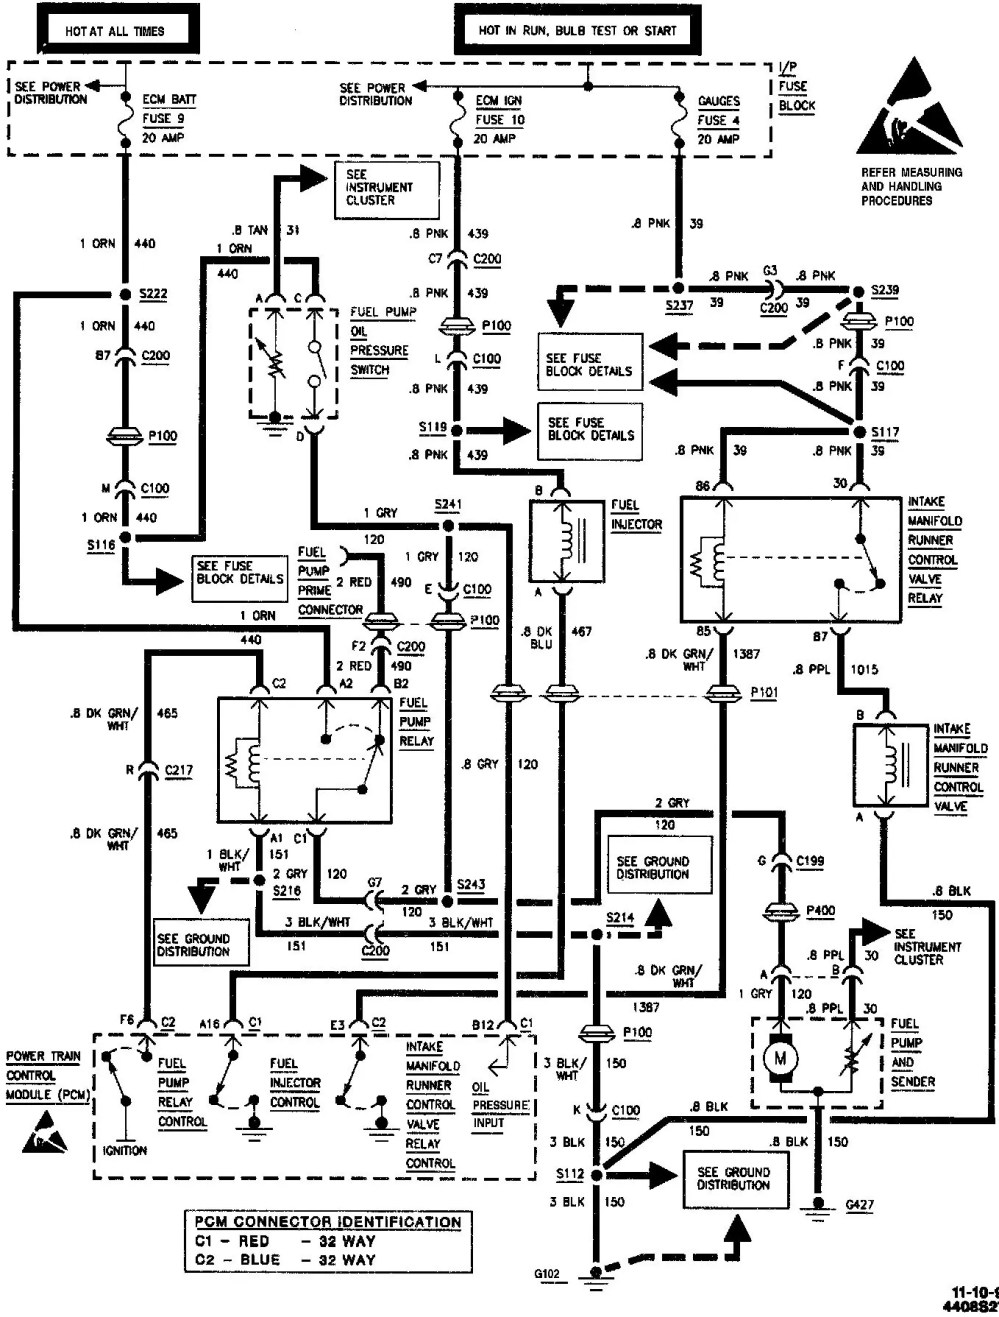 medium resolution of 2000 s10 transmission wiring diagram data schematic diagram 1995 chevy s10 transmission diagram